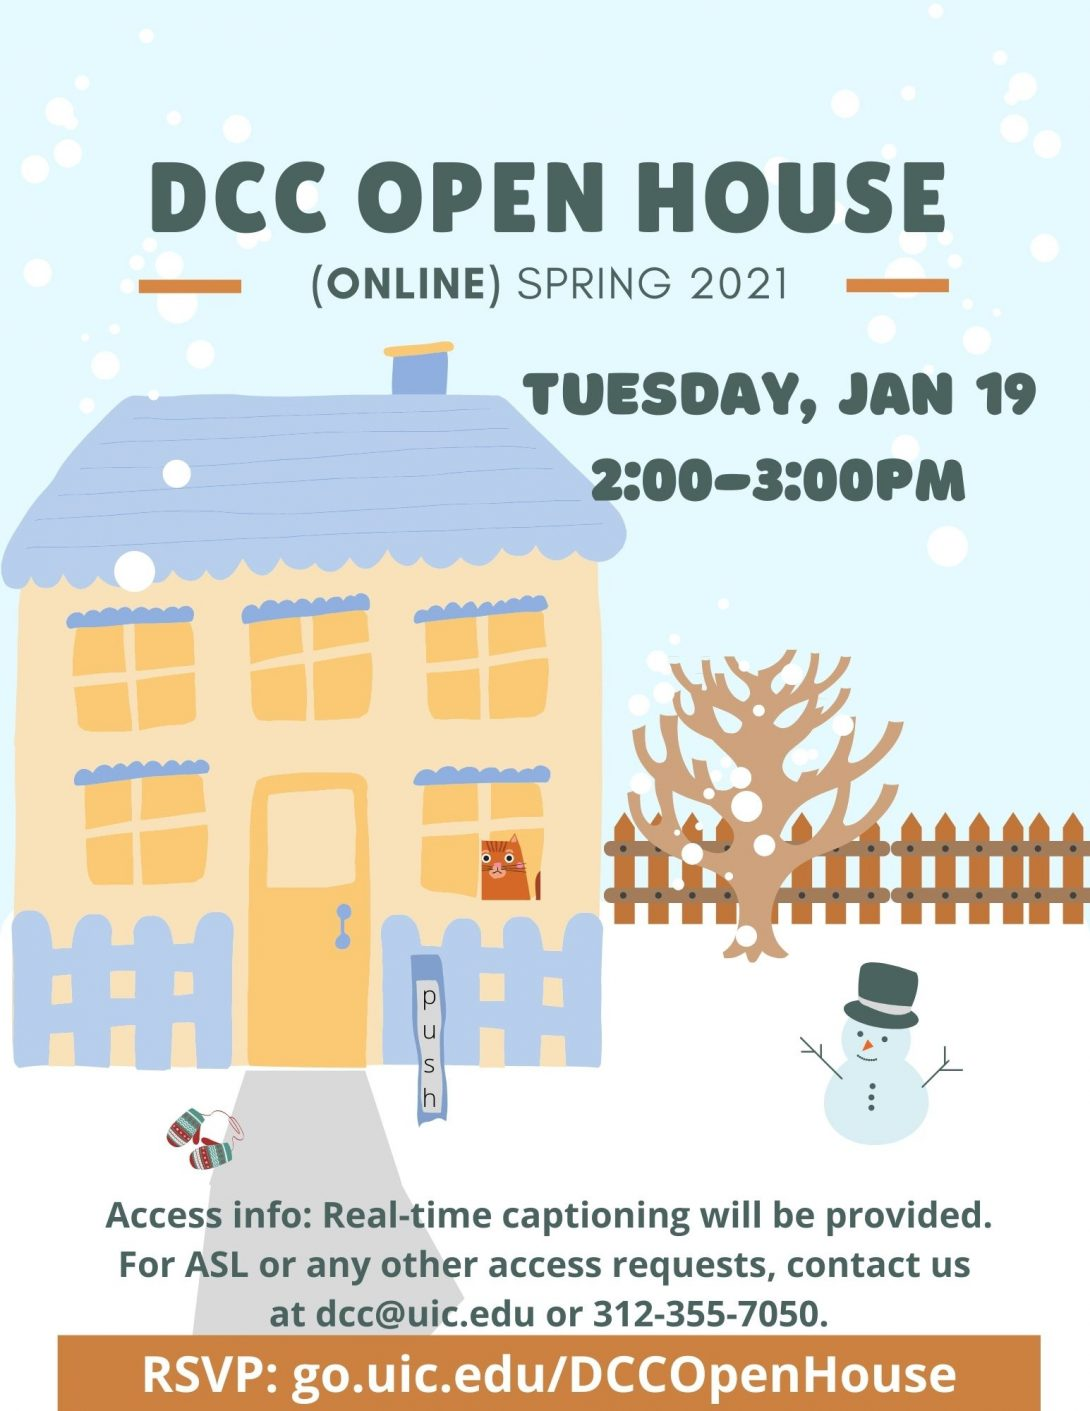 DCC Spring 2021 Open House Flyer